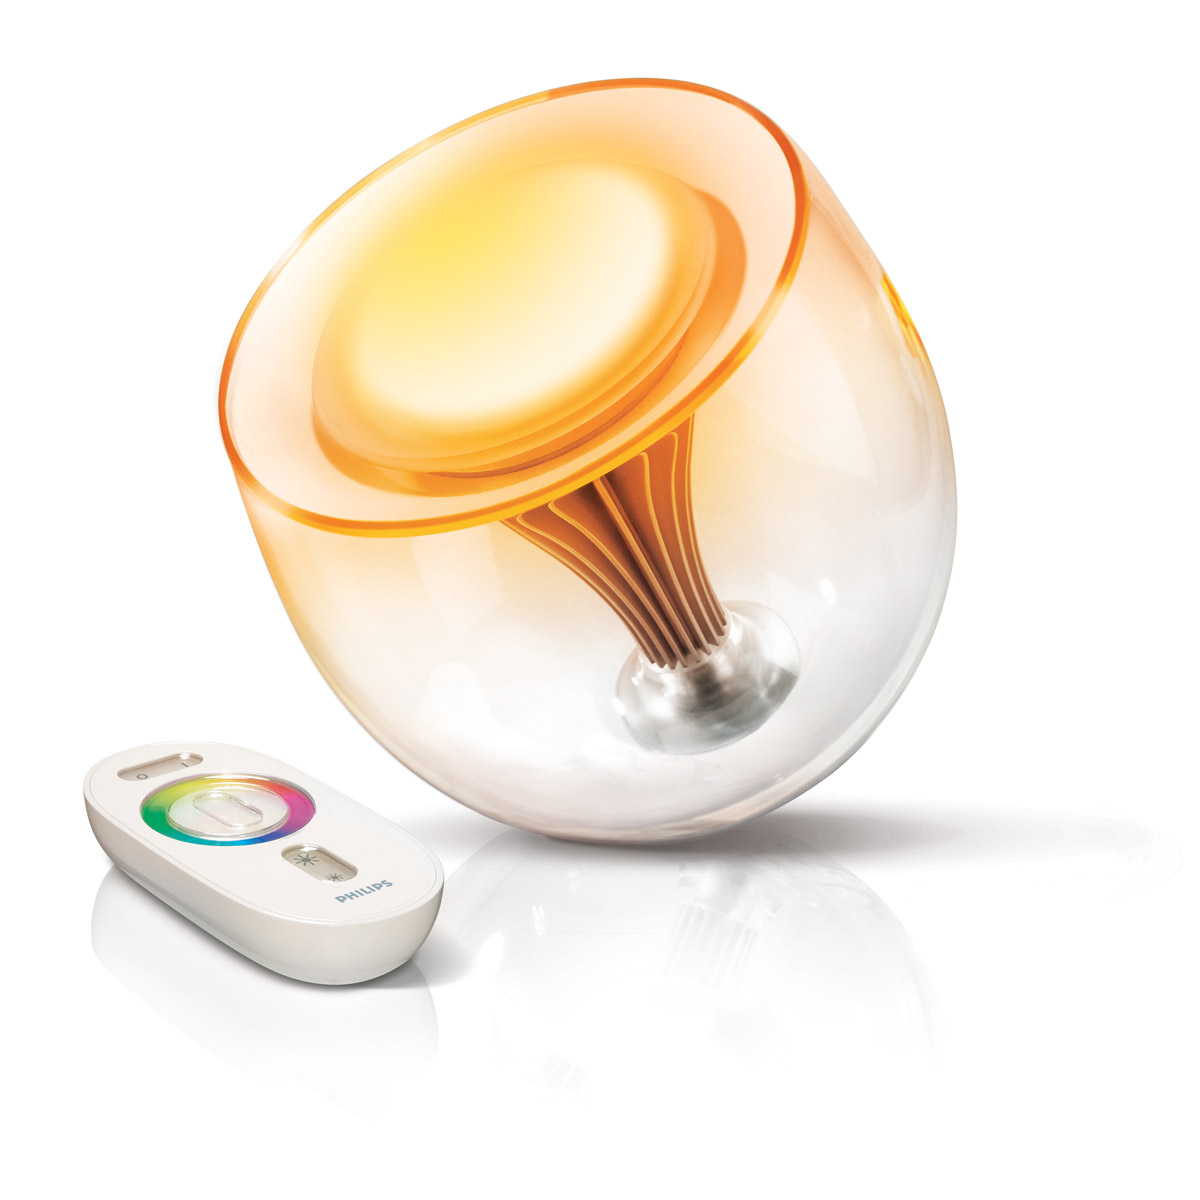 philips livingcolors 16 million color led lamp the